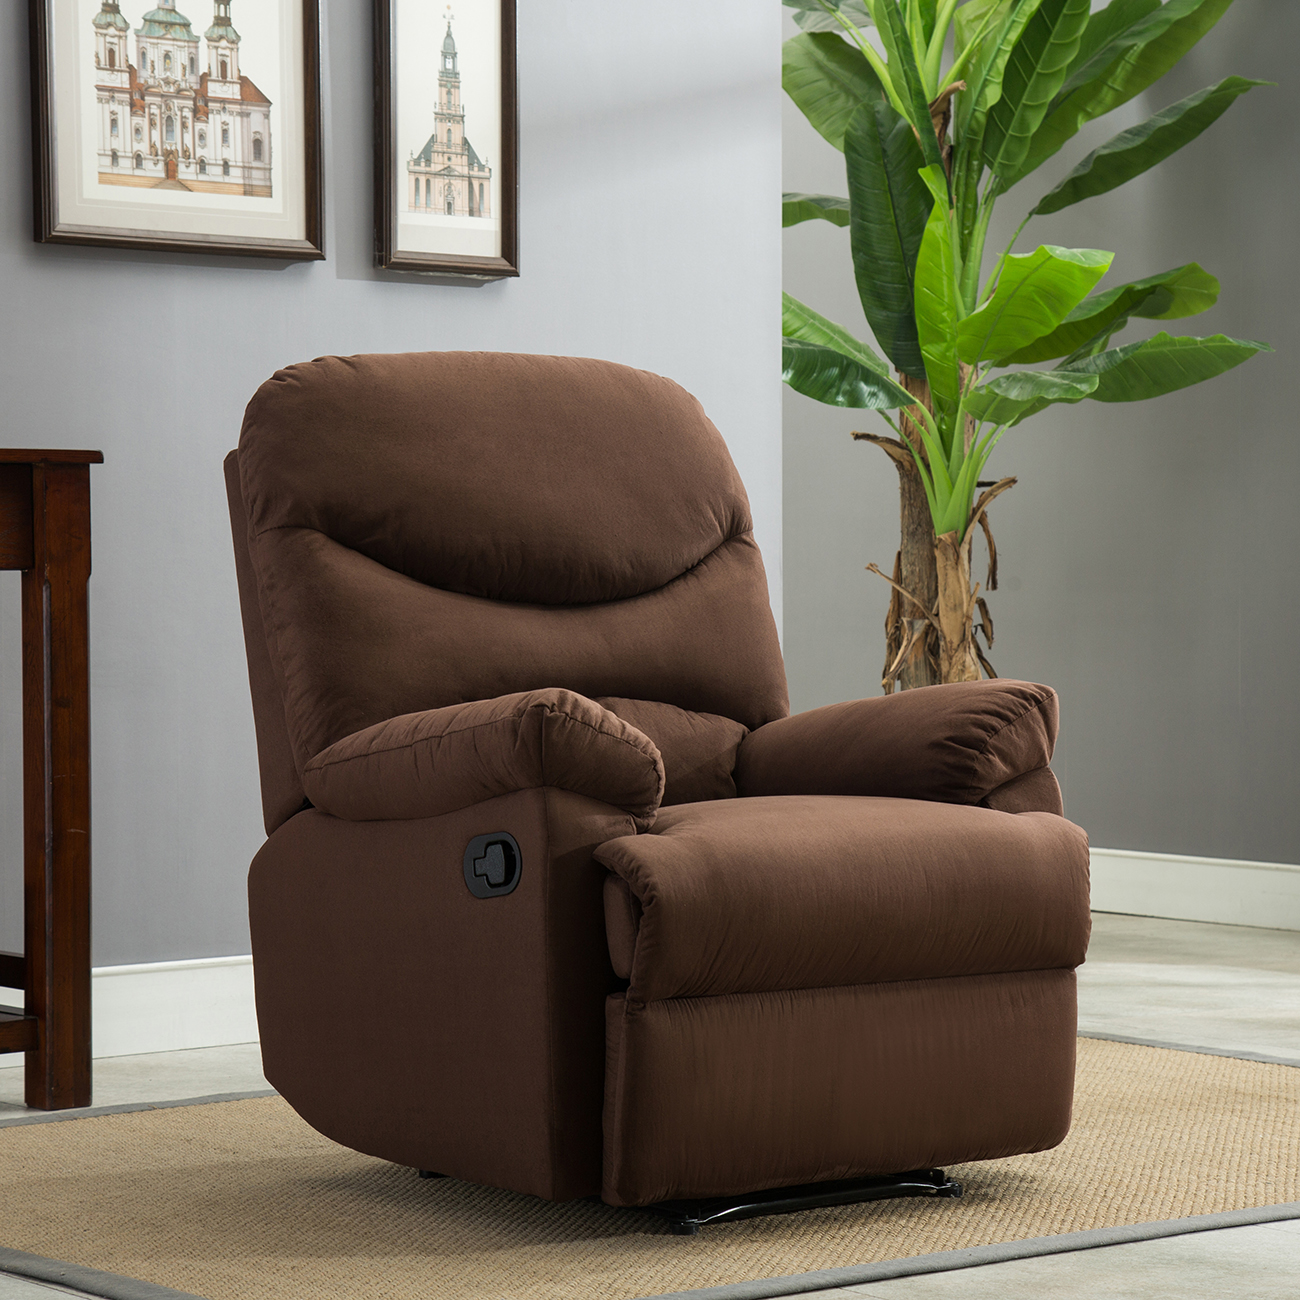 Furniture Living Room Seating Recliners Brown